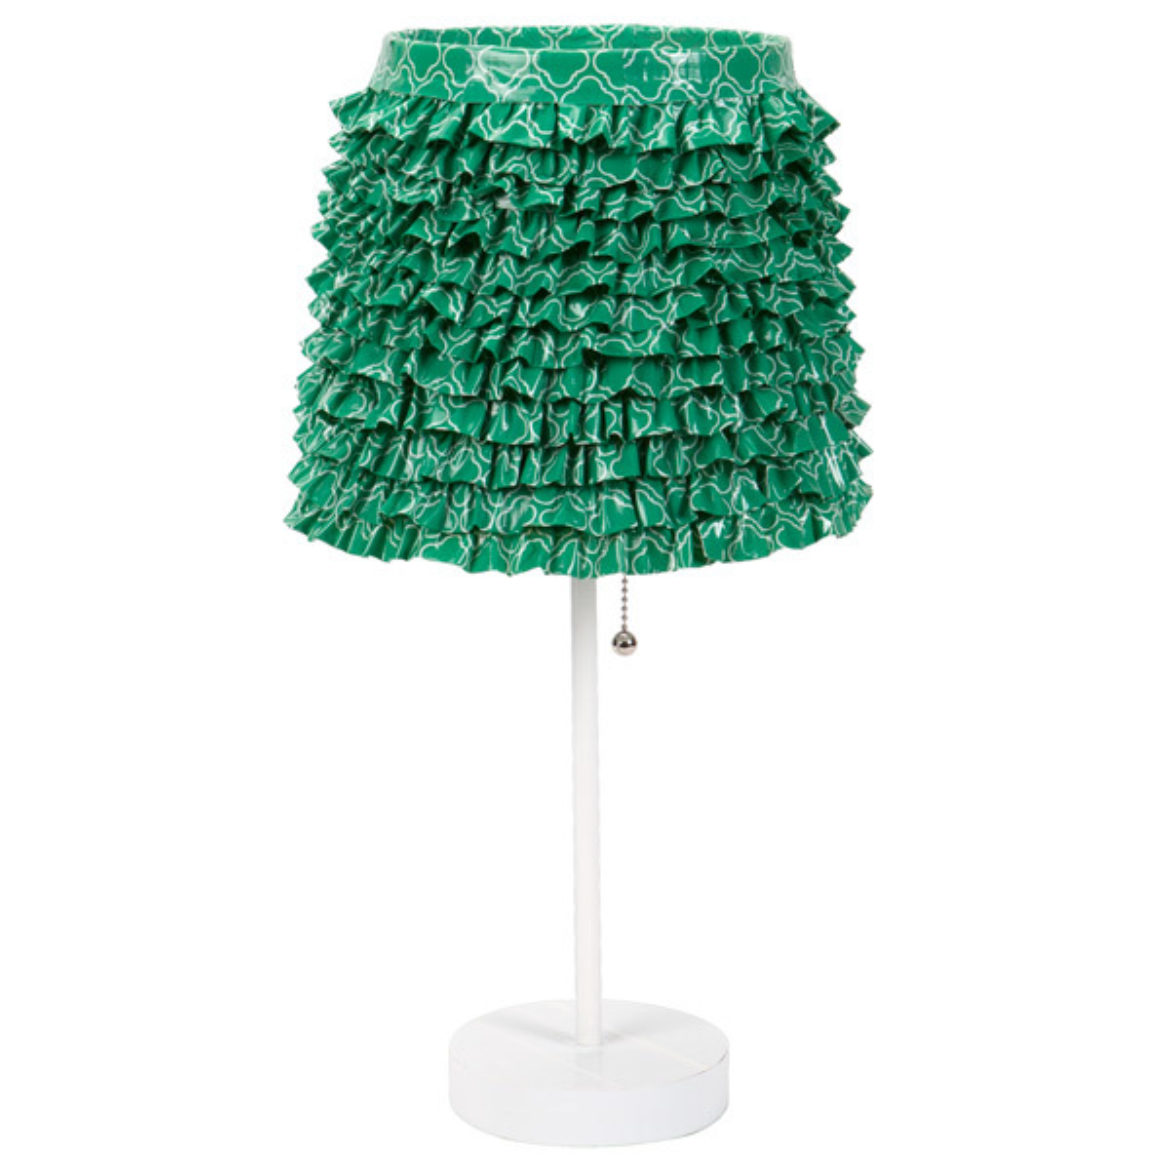 Decorative Lamp Shades How to duck tape decorative lamp shade duck brand step 8 place your lamp shade audiocablefo